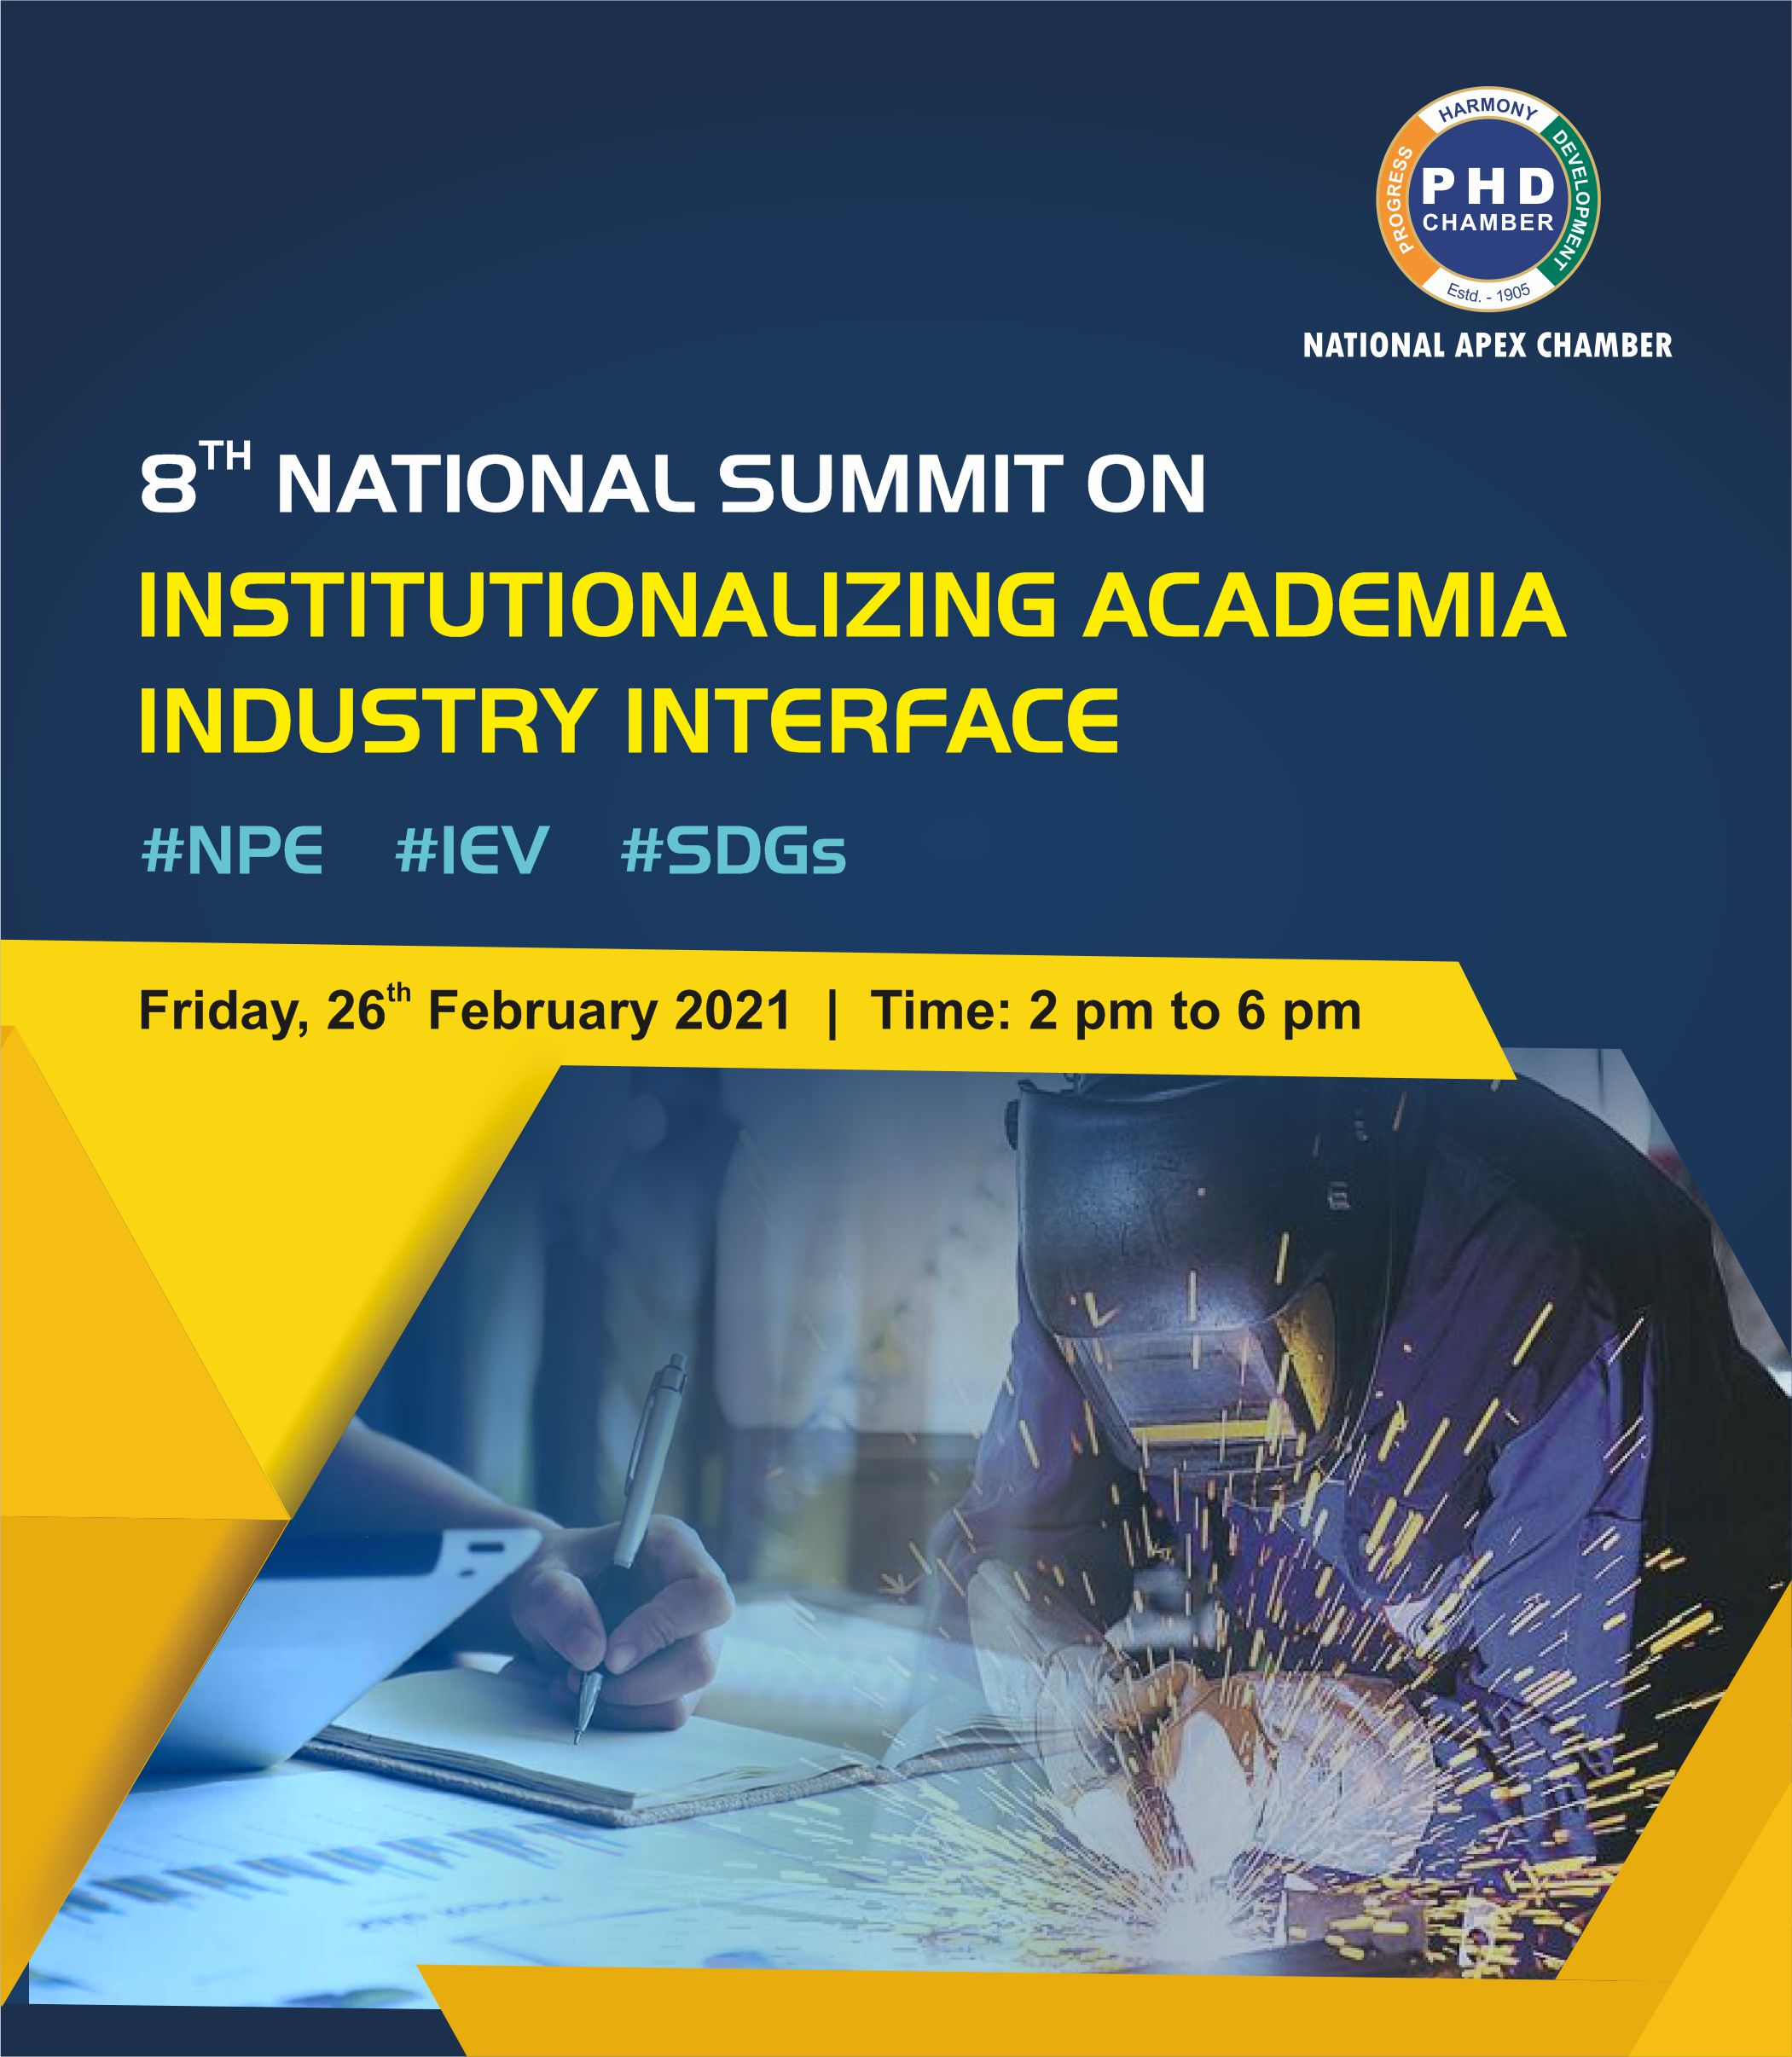 8th National Summit on Institutionalizing Academia Industry Interface